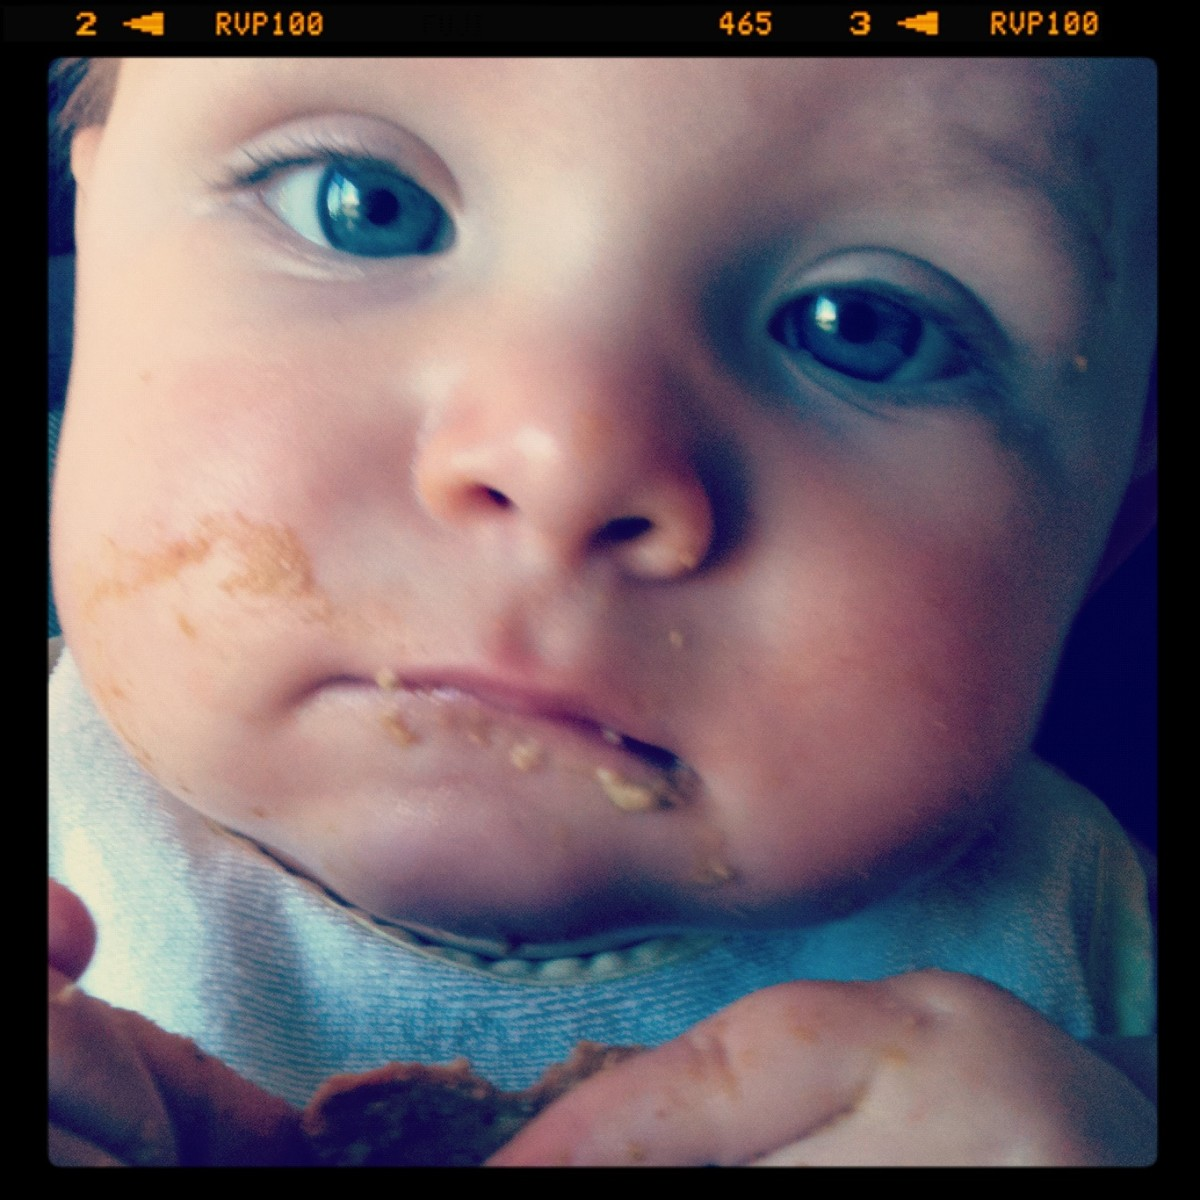 Graham crackers taste better than moms face.